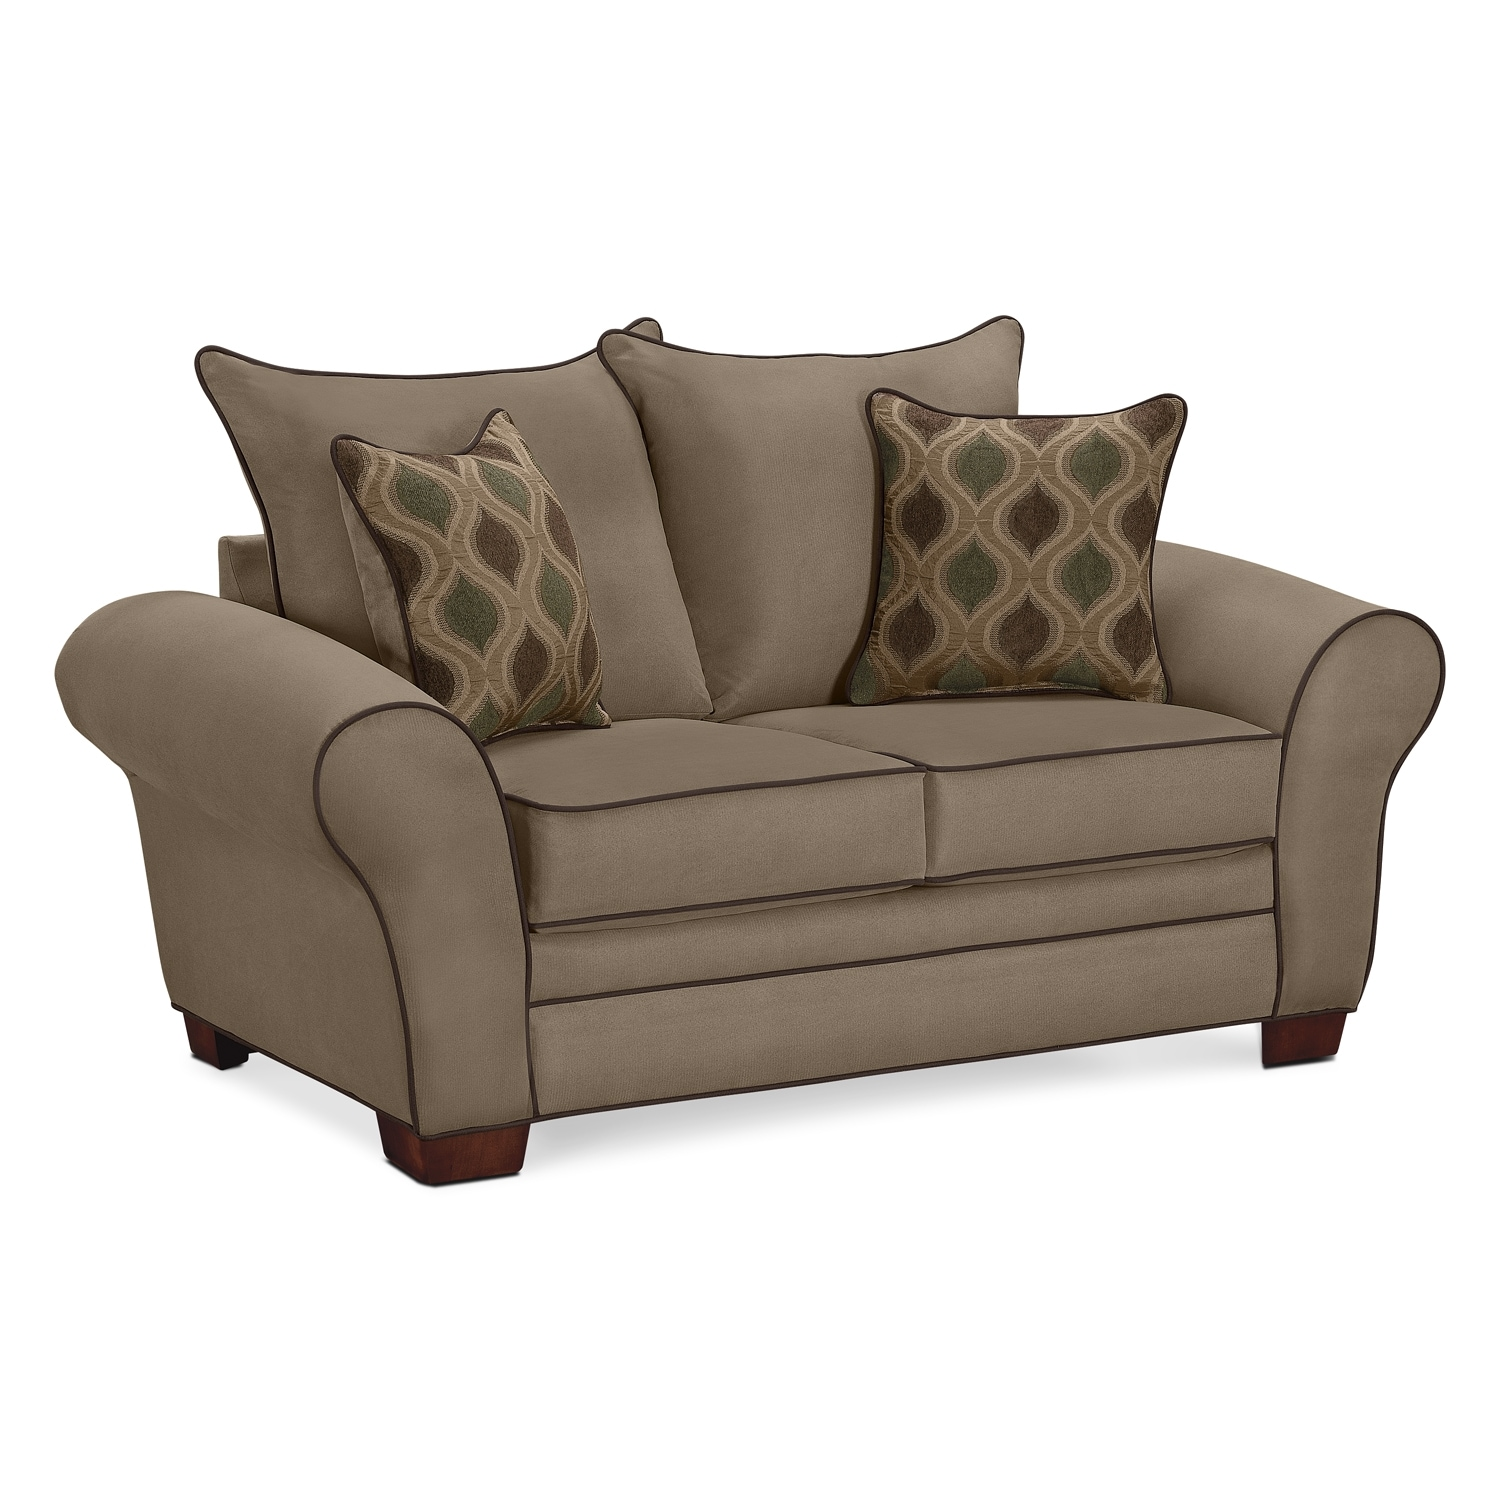 Living Room Furniture - Rendezvous Loveseat - Tan